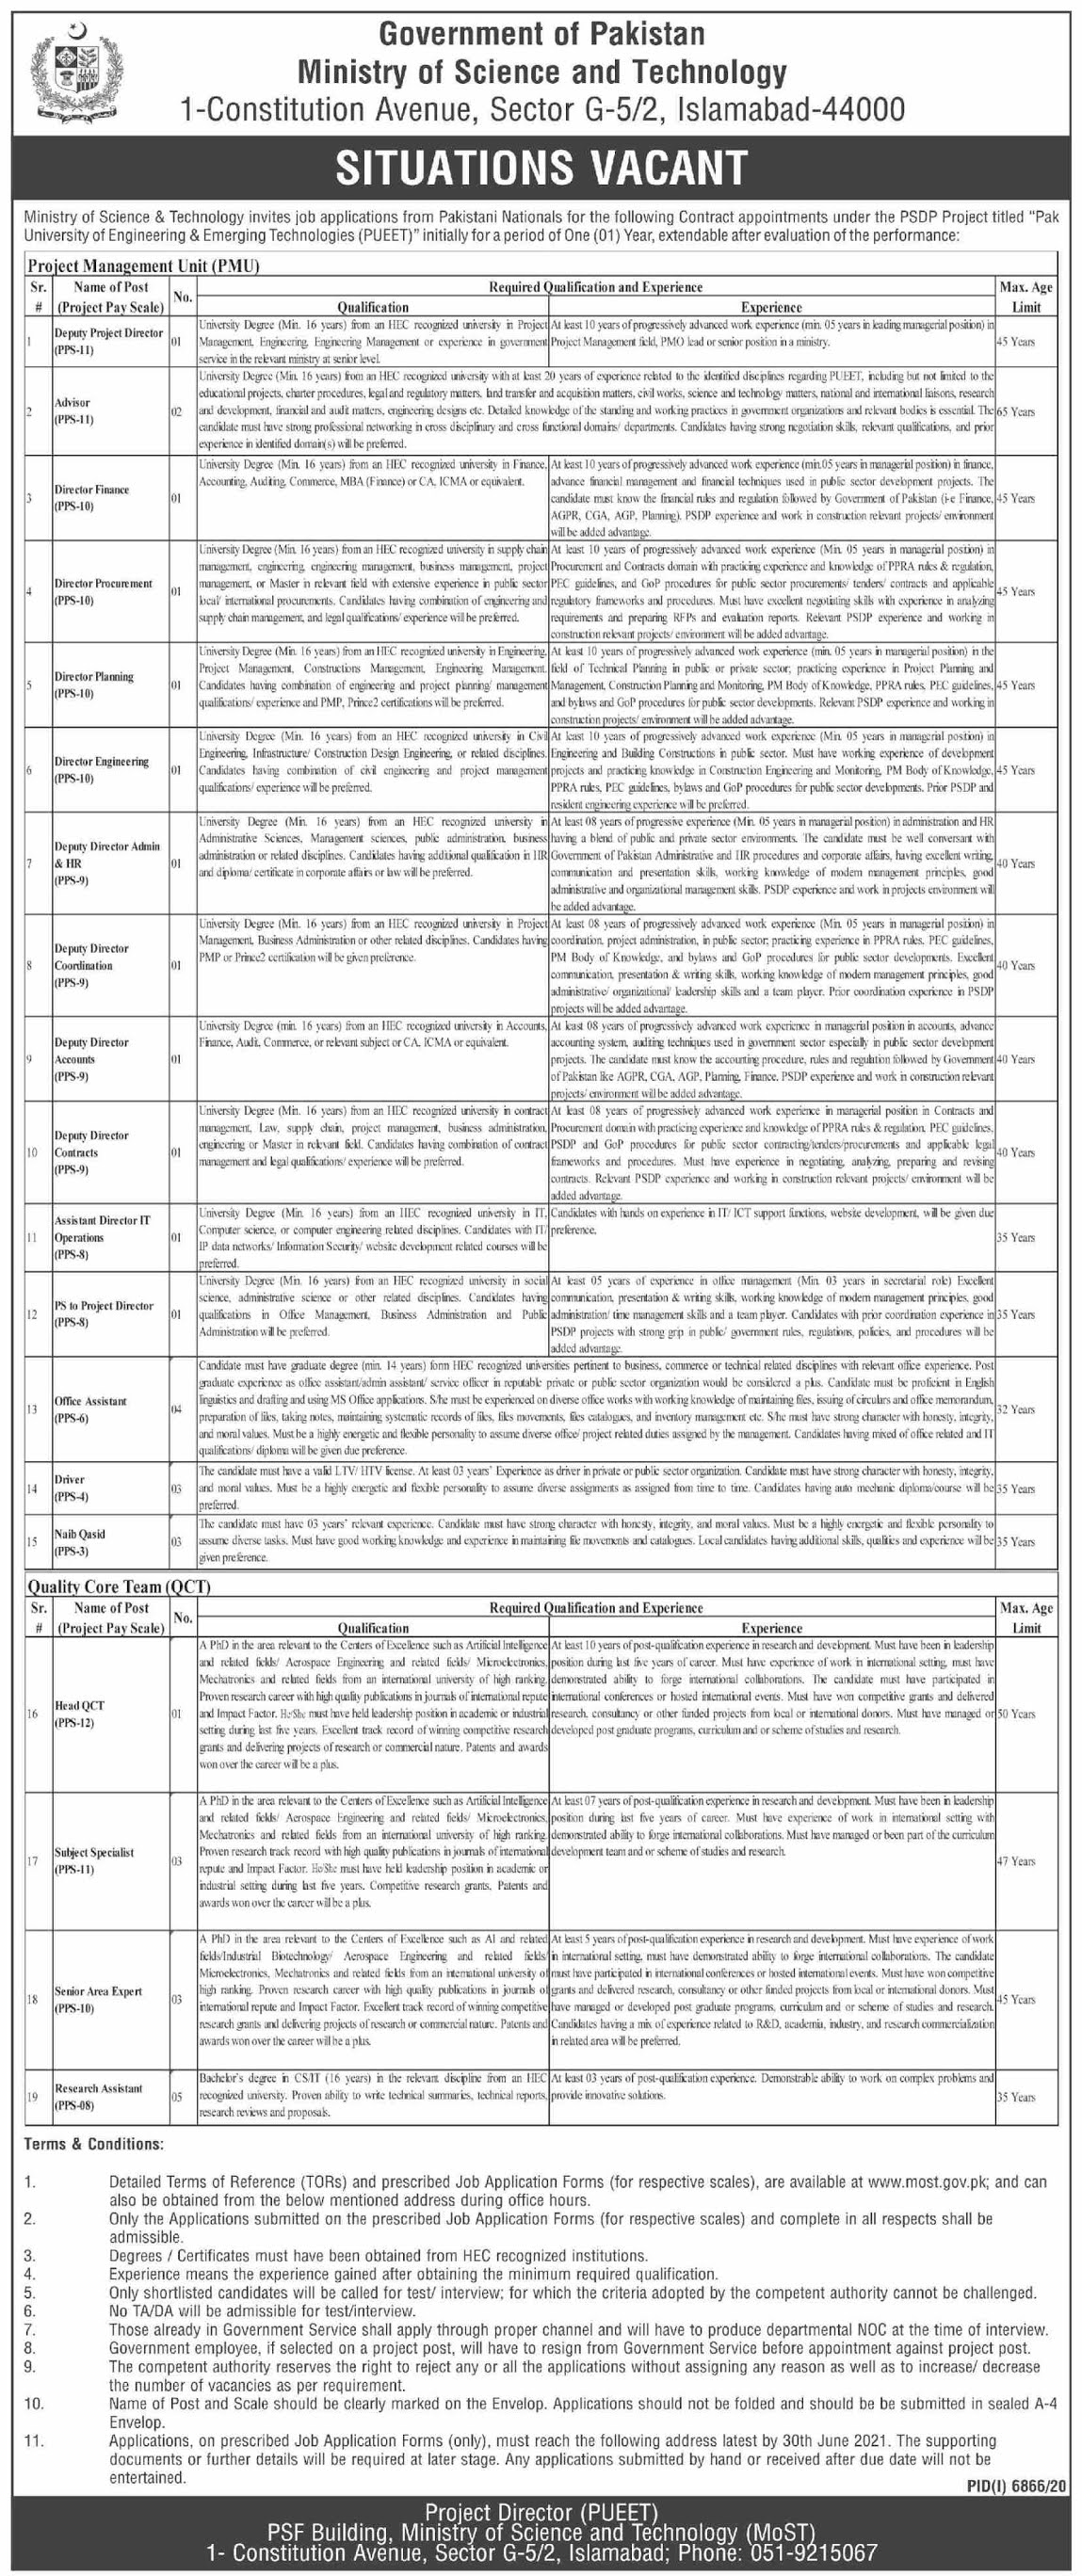 Ministry of Science and Technology Govt of Pakistan Jobs 2021 Latest Advertisement